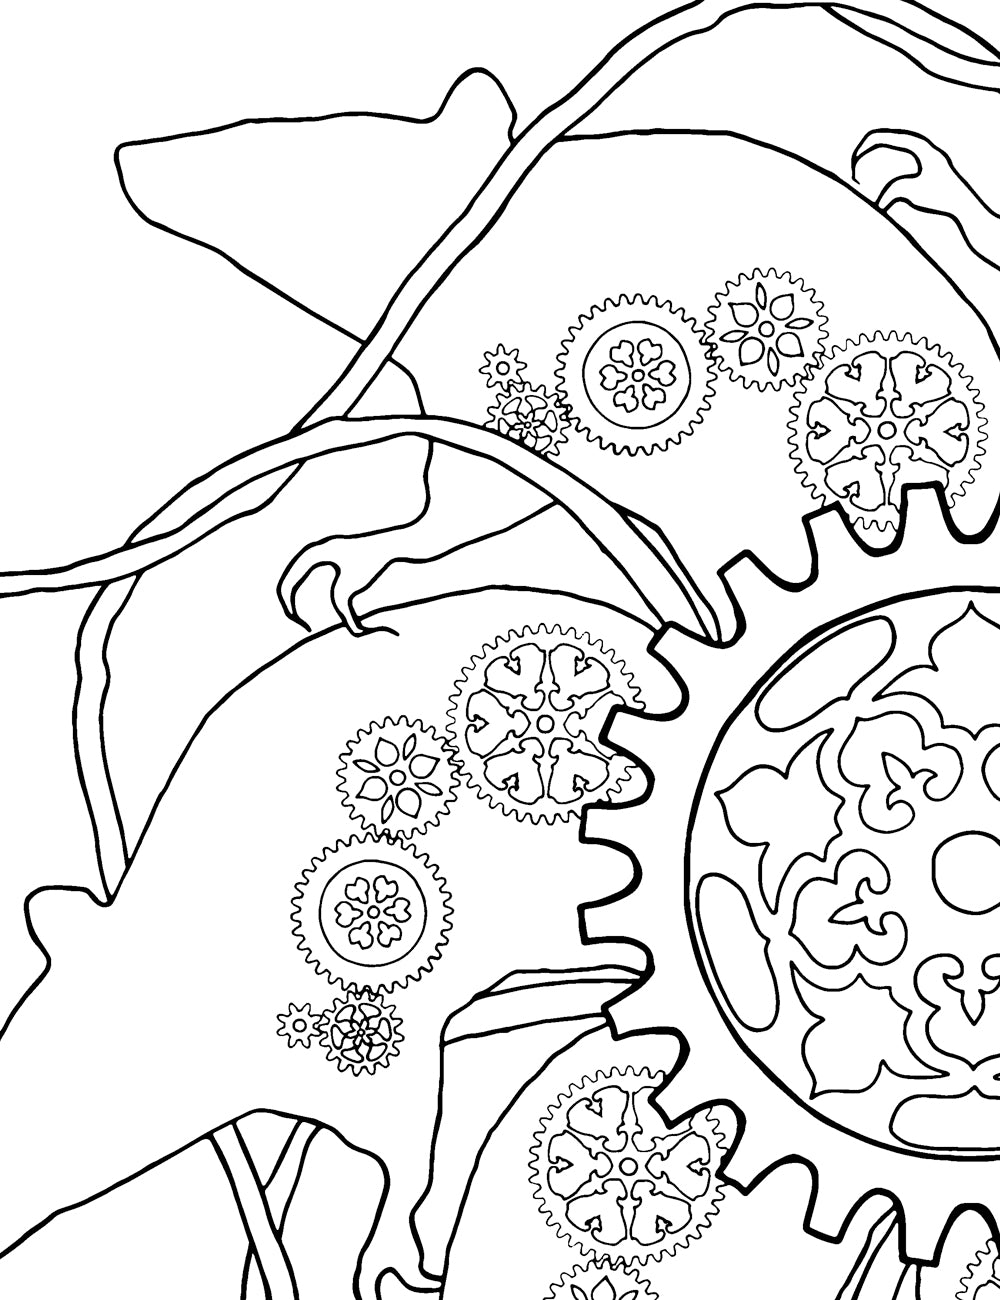 Asylum Coloring Book Page: Clockwork Rats